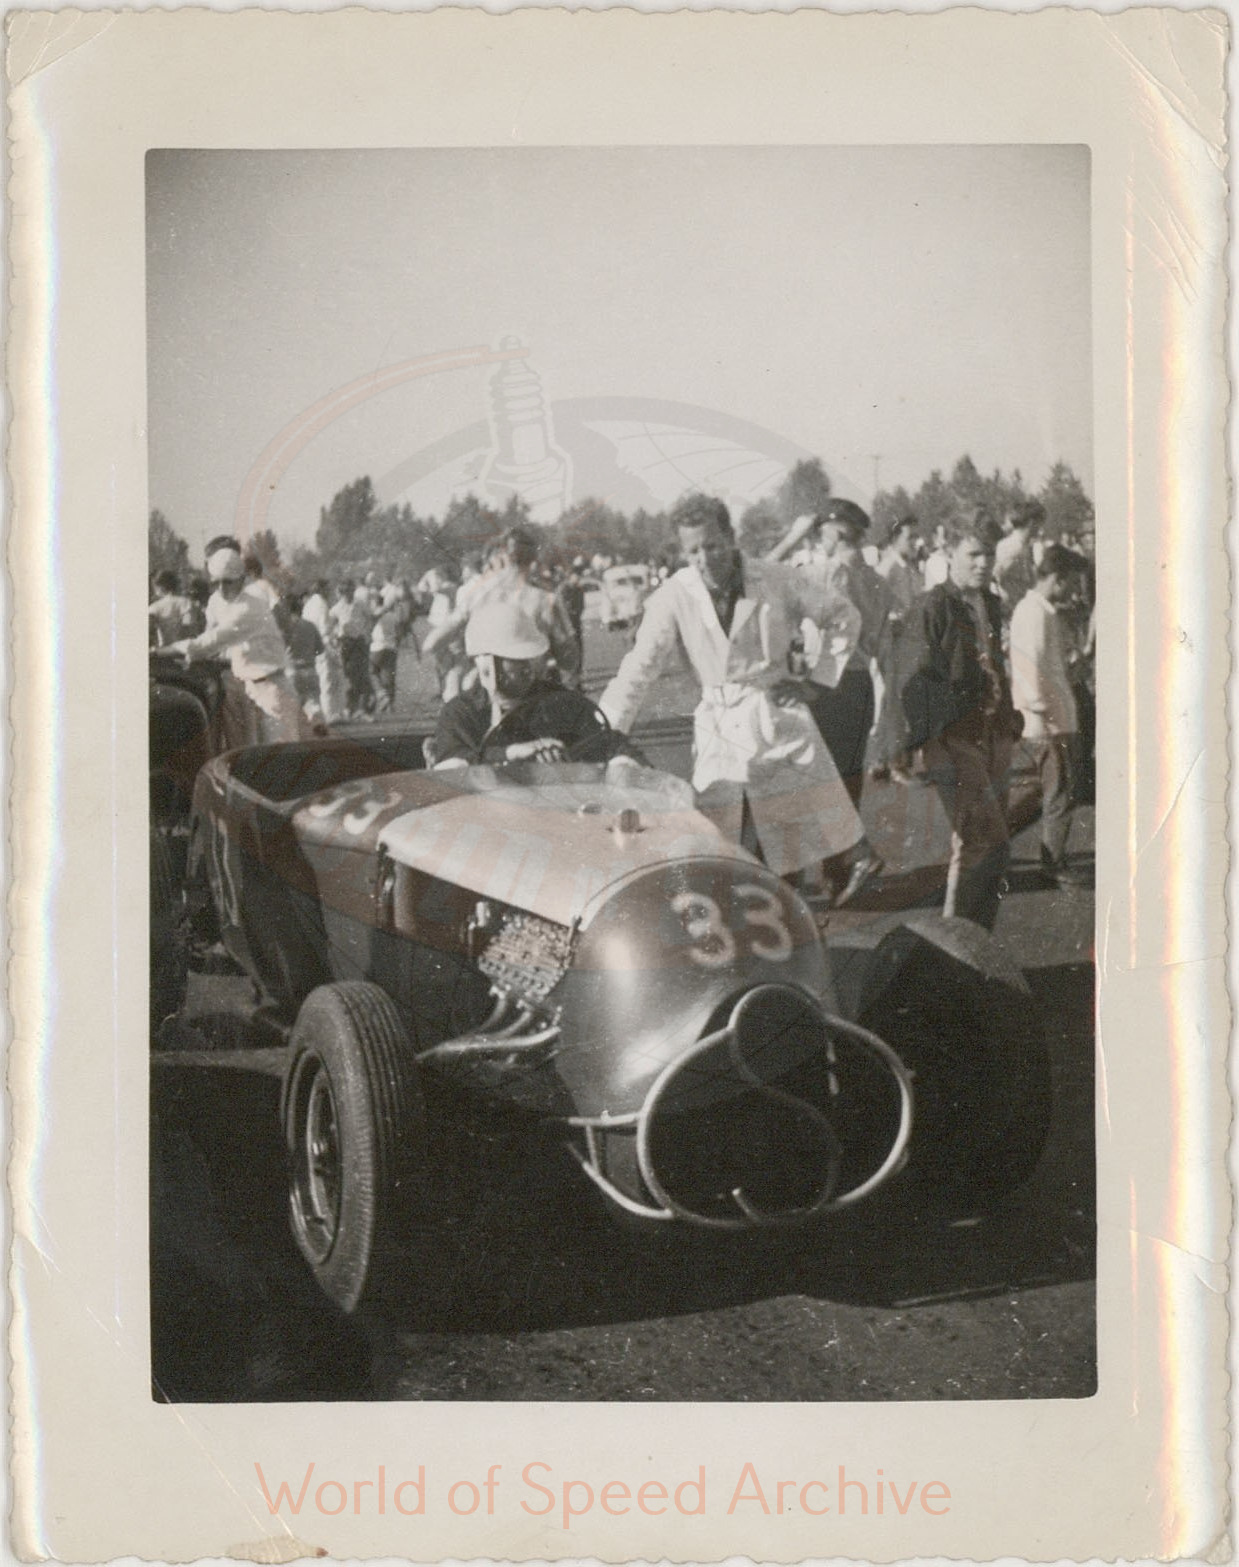 WOS#3786 - GM05 p087: Jimmy Martin in a # 33 Model A Roadster